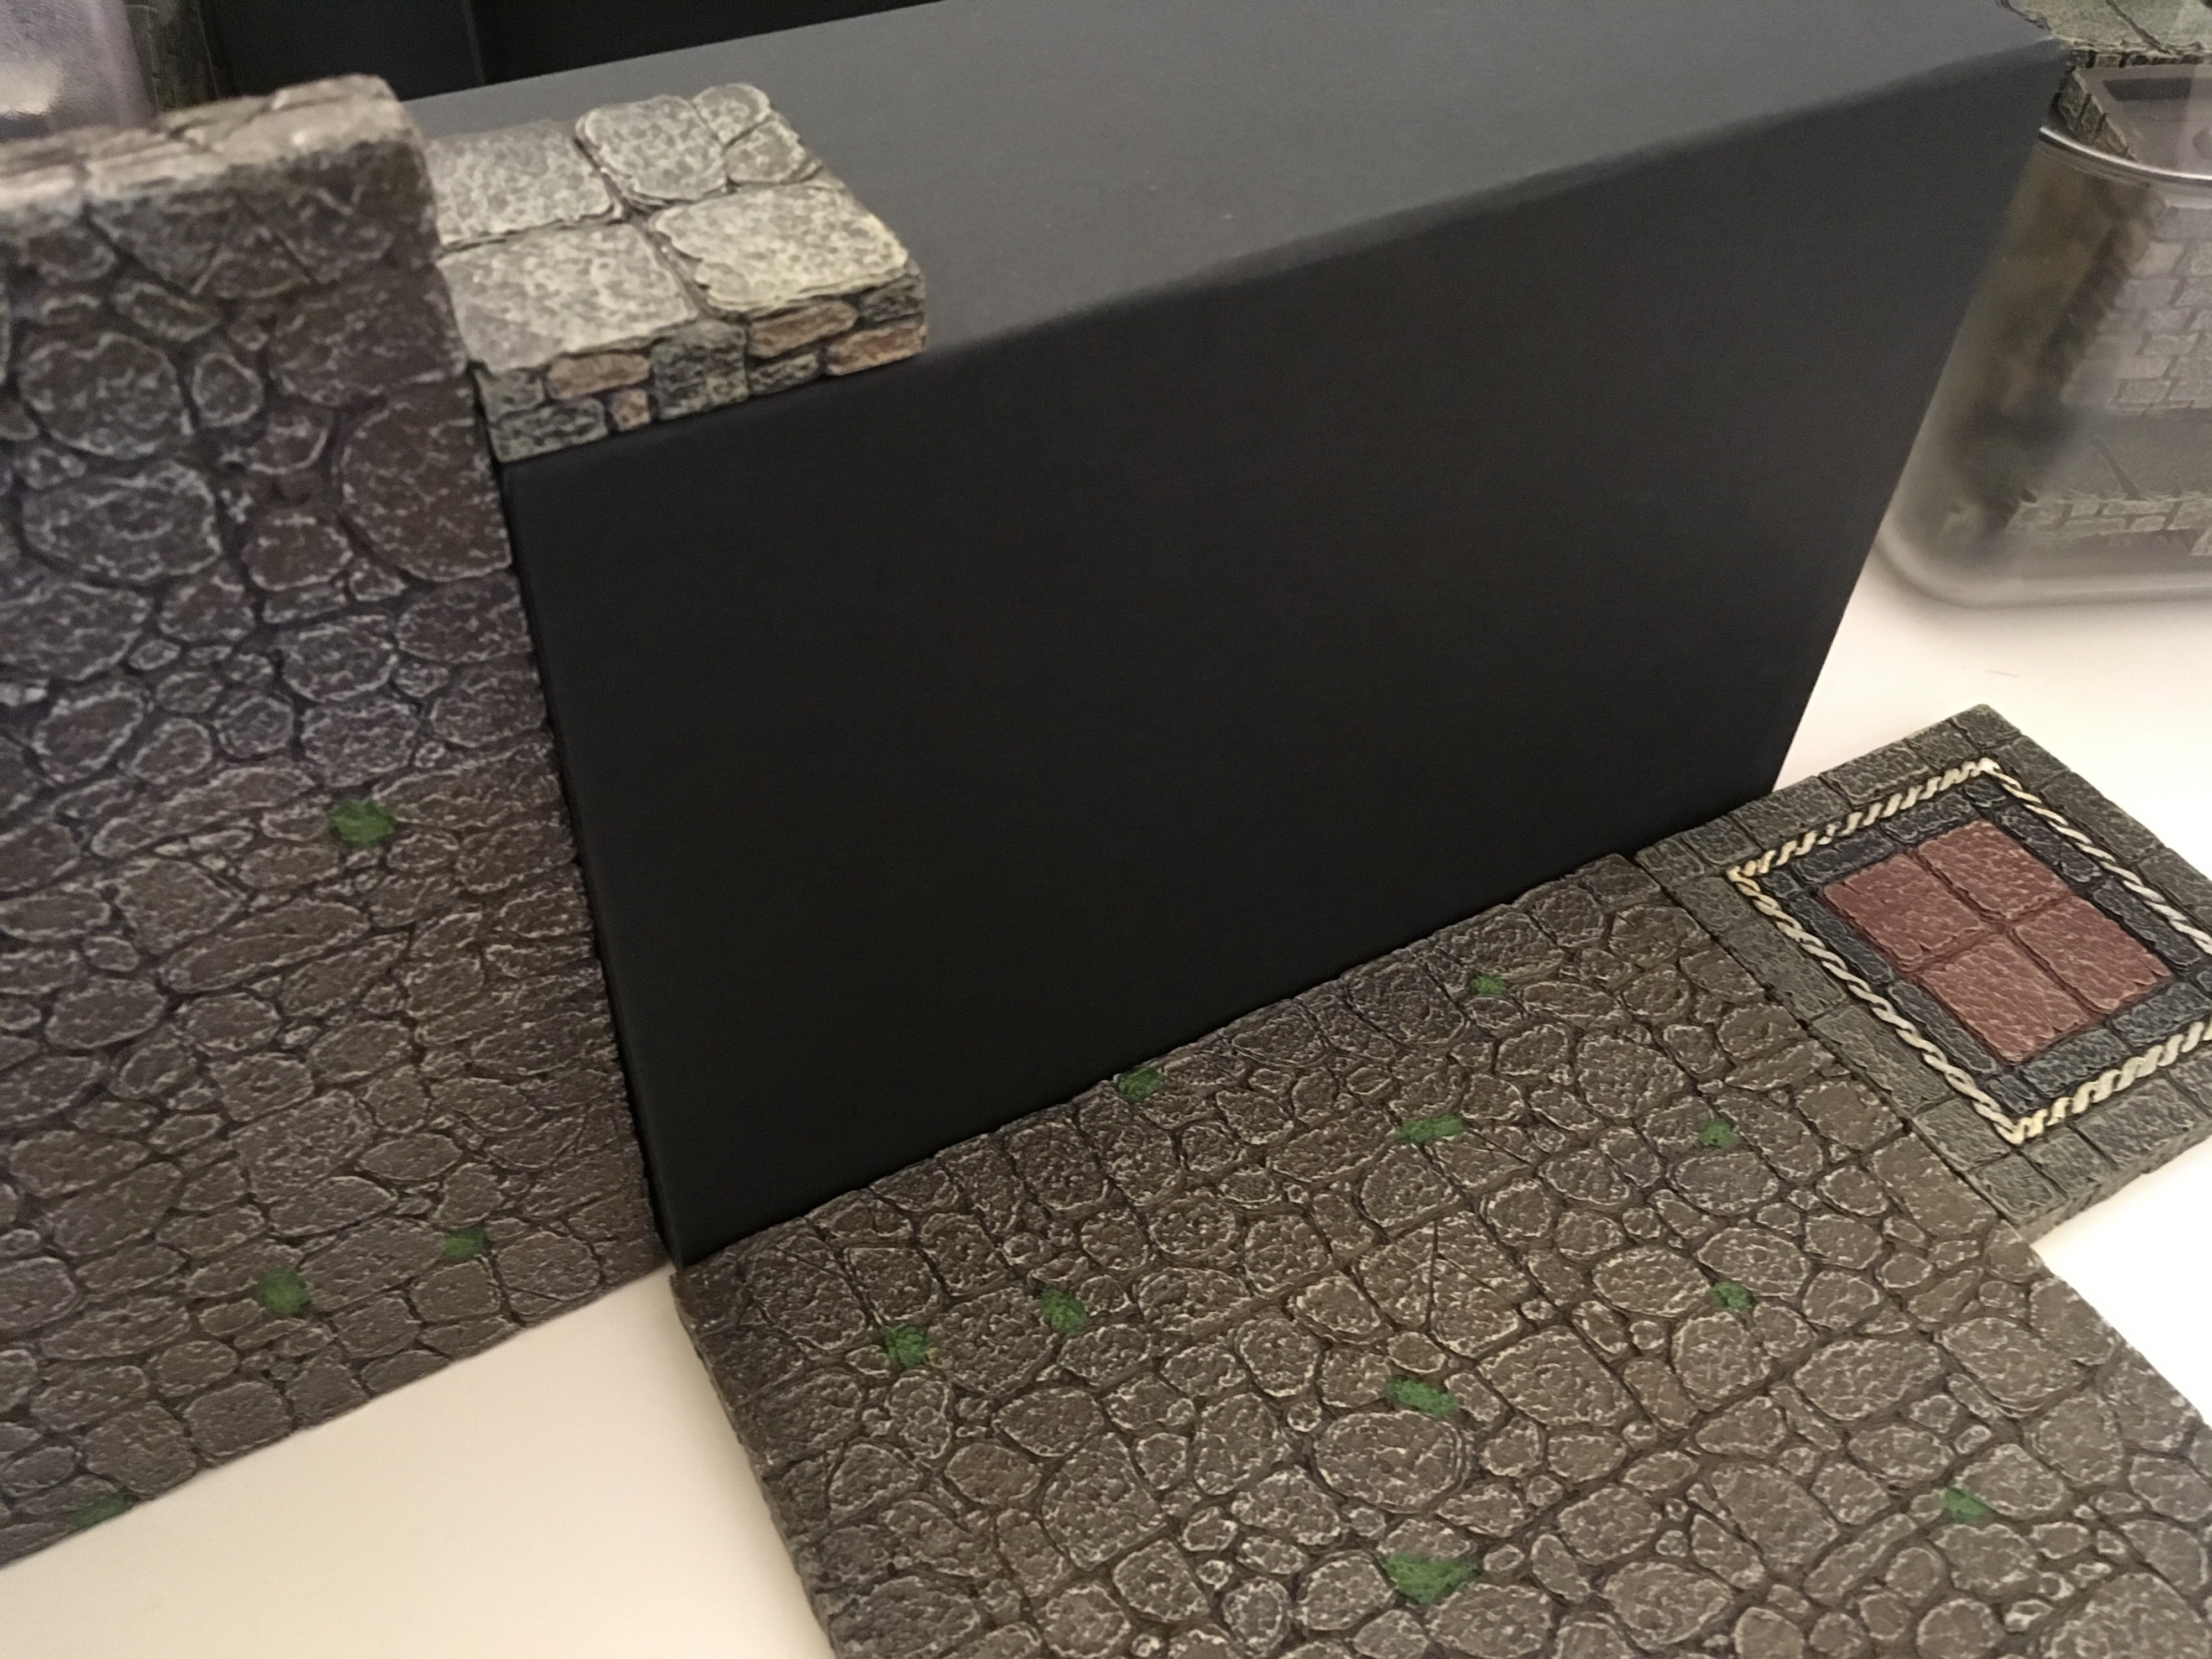 Dwarven Forge floor pieces are used next to the box to indicate its size for game purposes